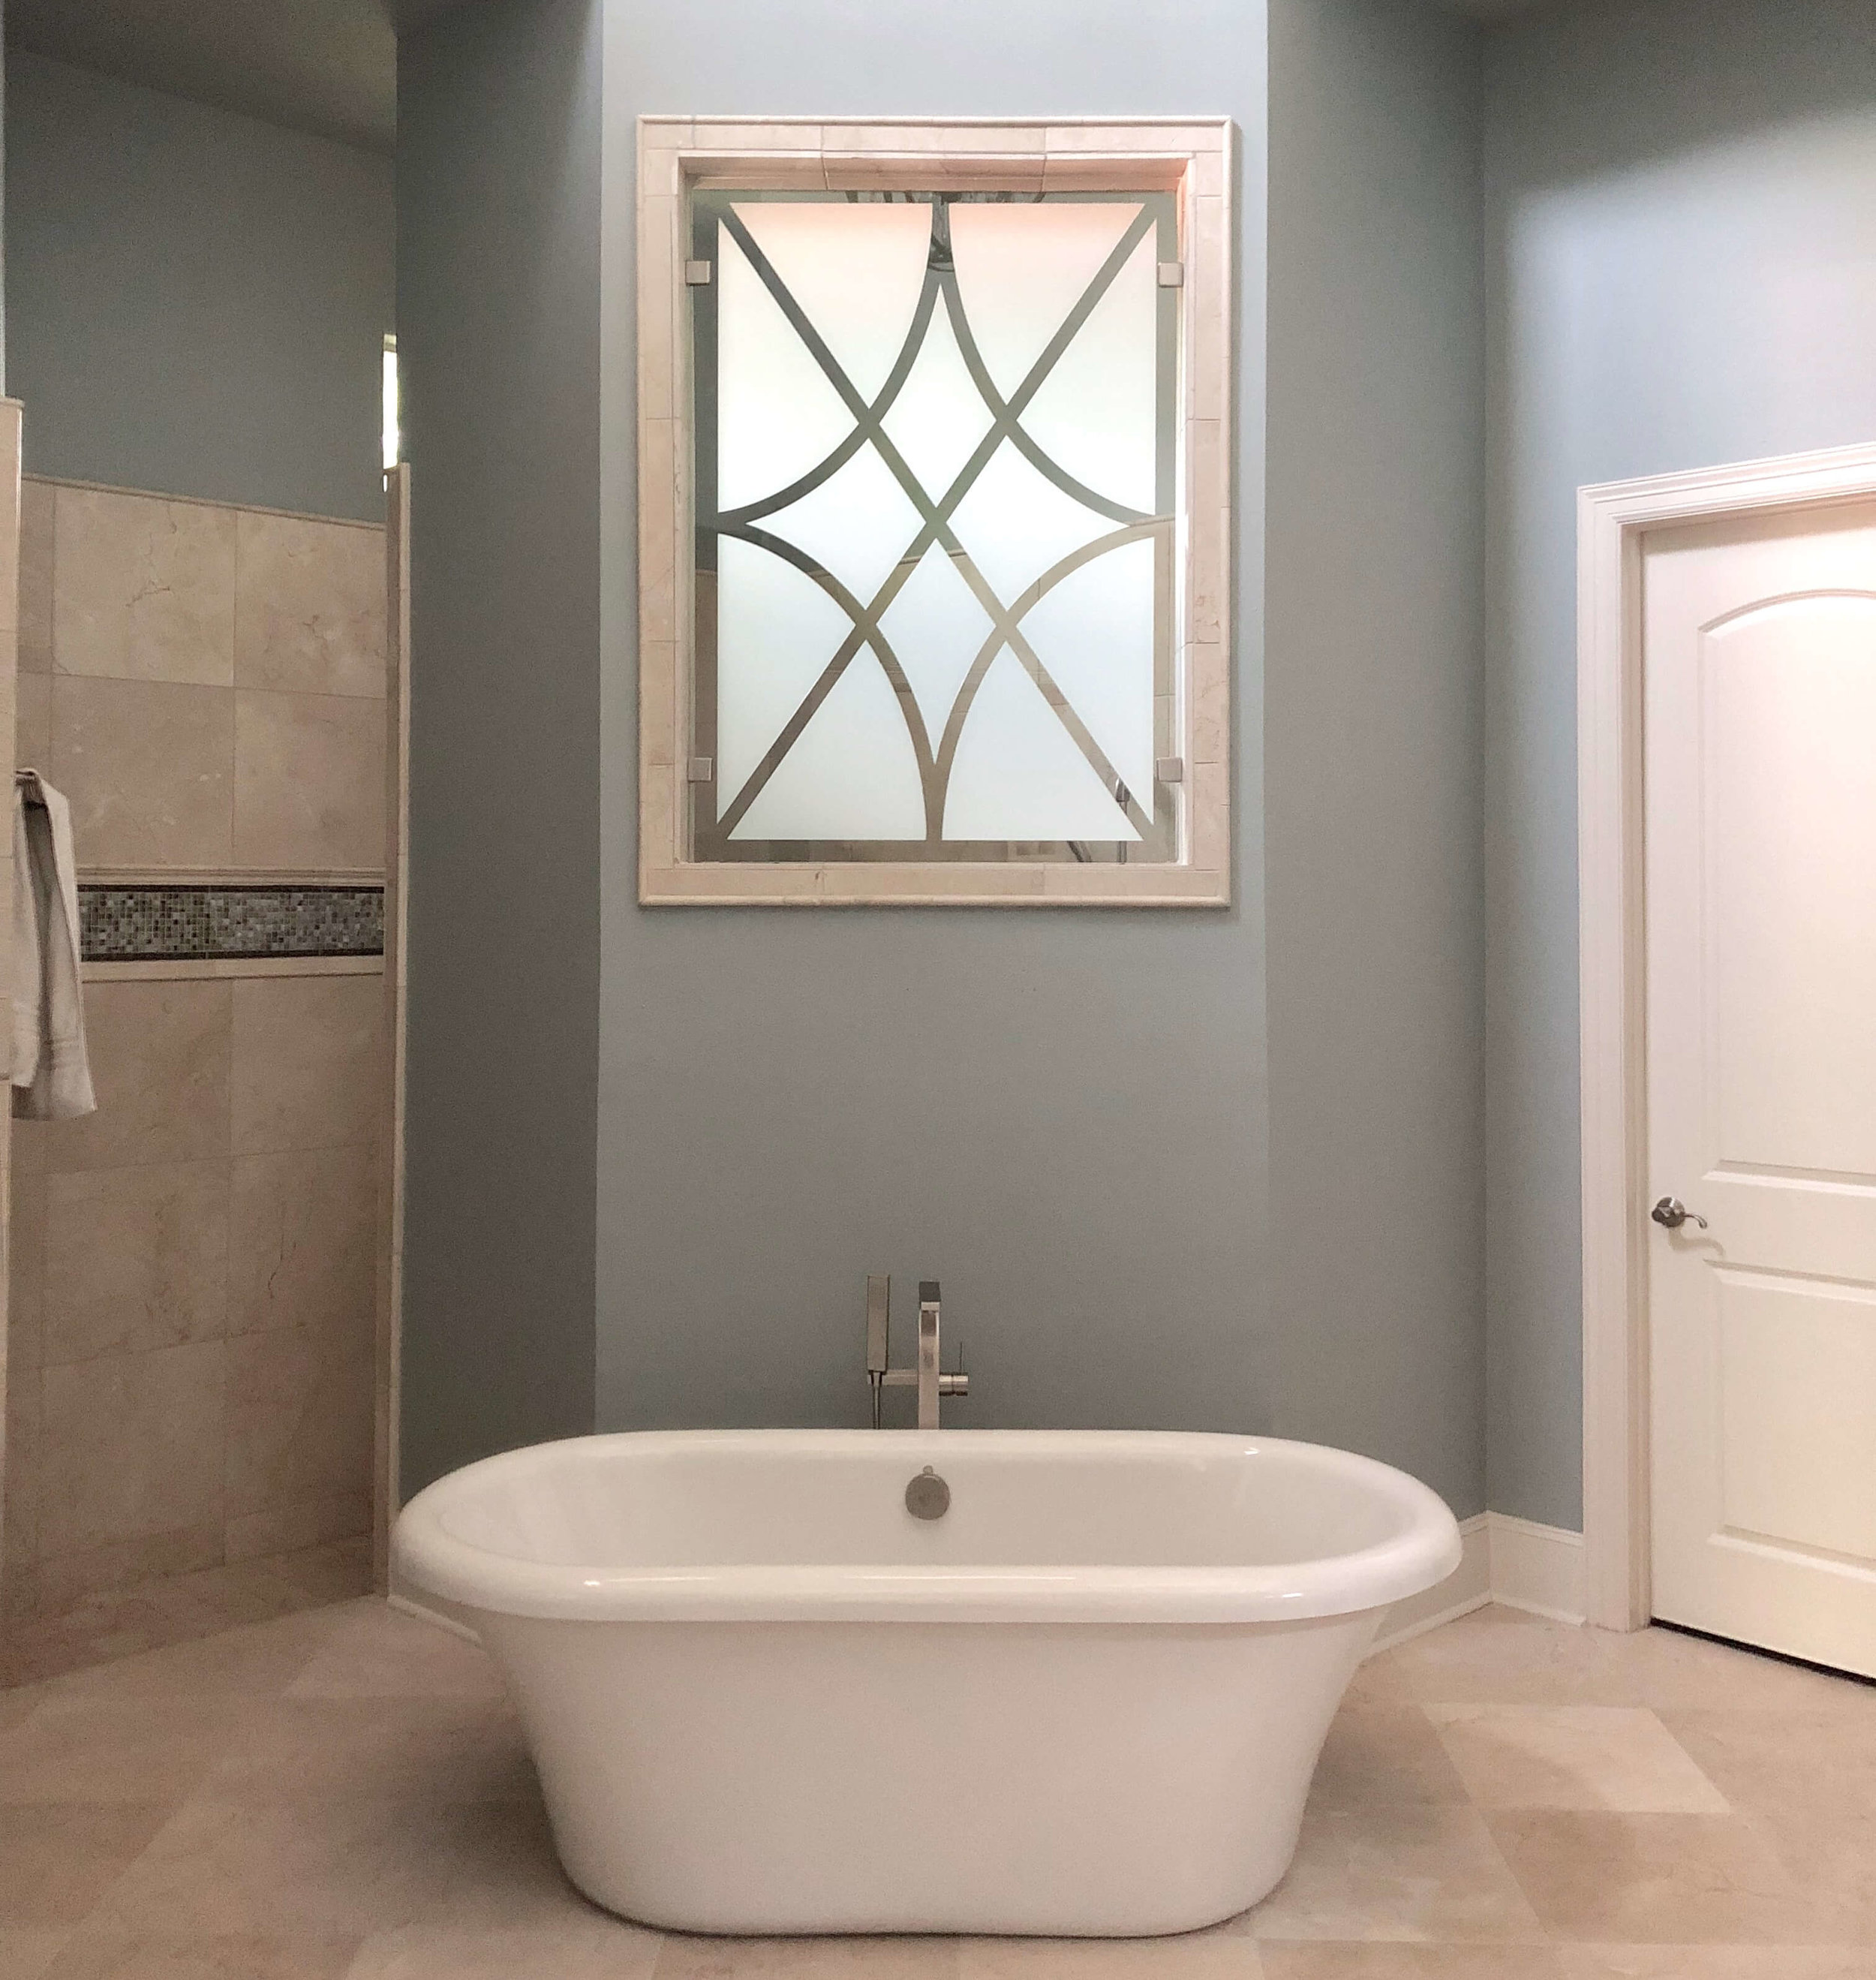 AFTER  - A free standing tub added a light touch in this bathroom. Note the window film pattern we added on to the glass above. Carla Aston, Designer | #freestandingtub #tub #bathroomdesign #windowfilm #bathroomideas